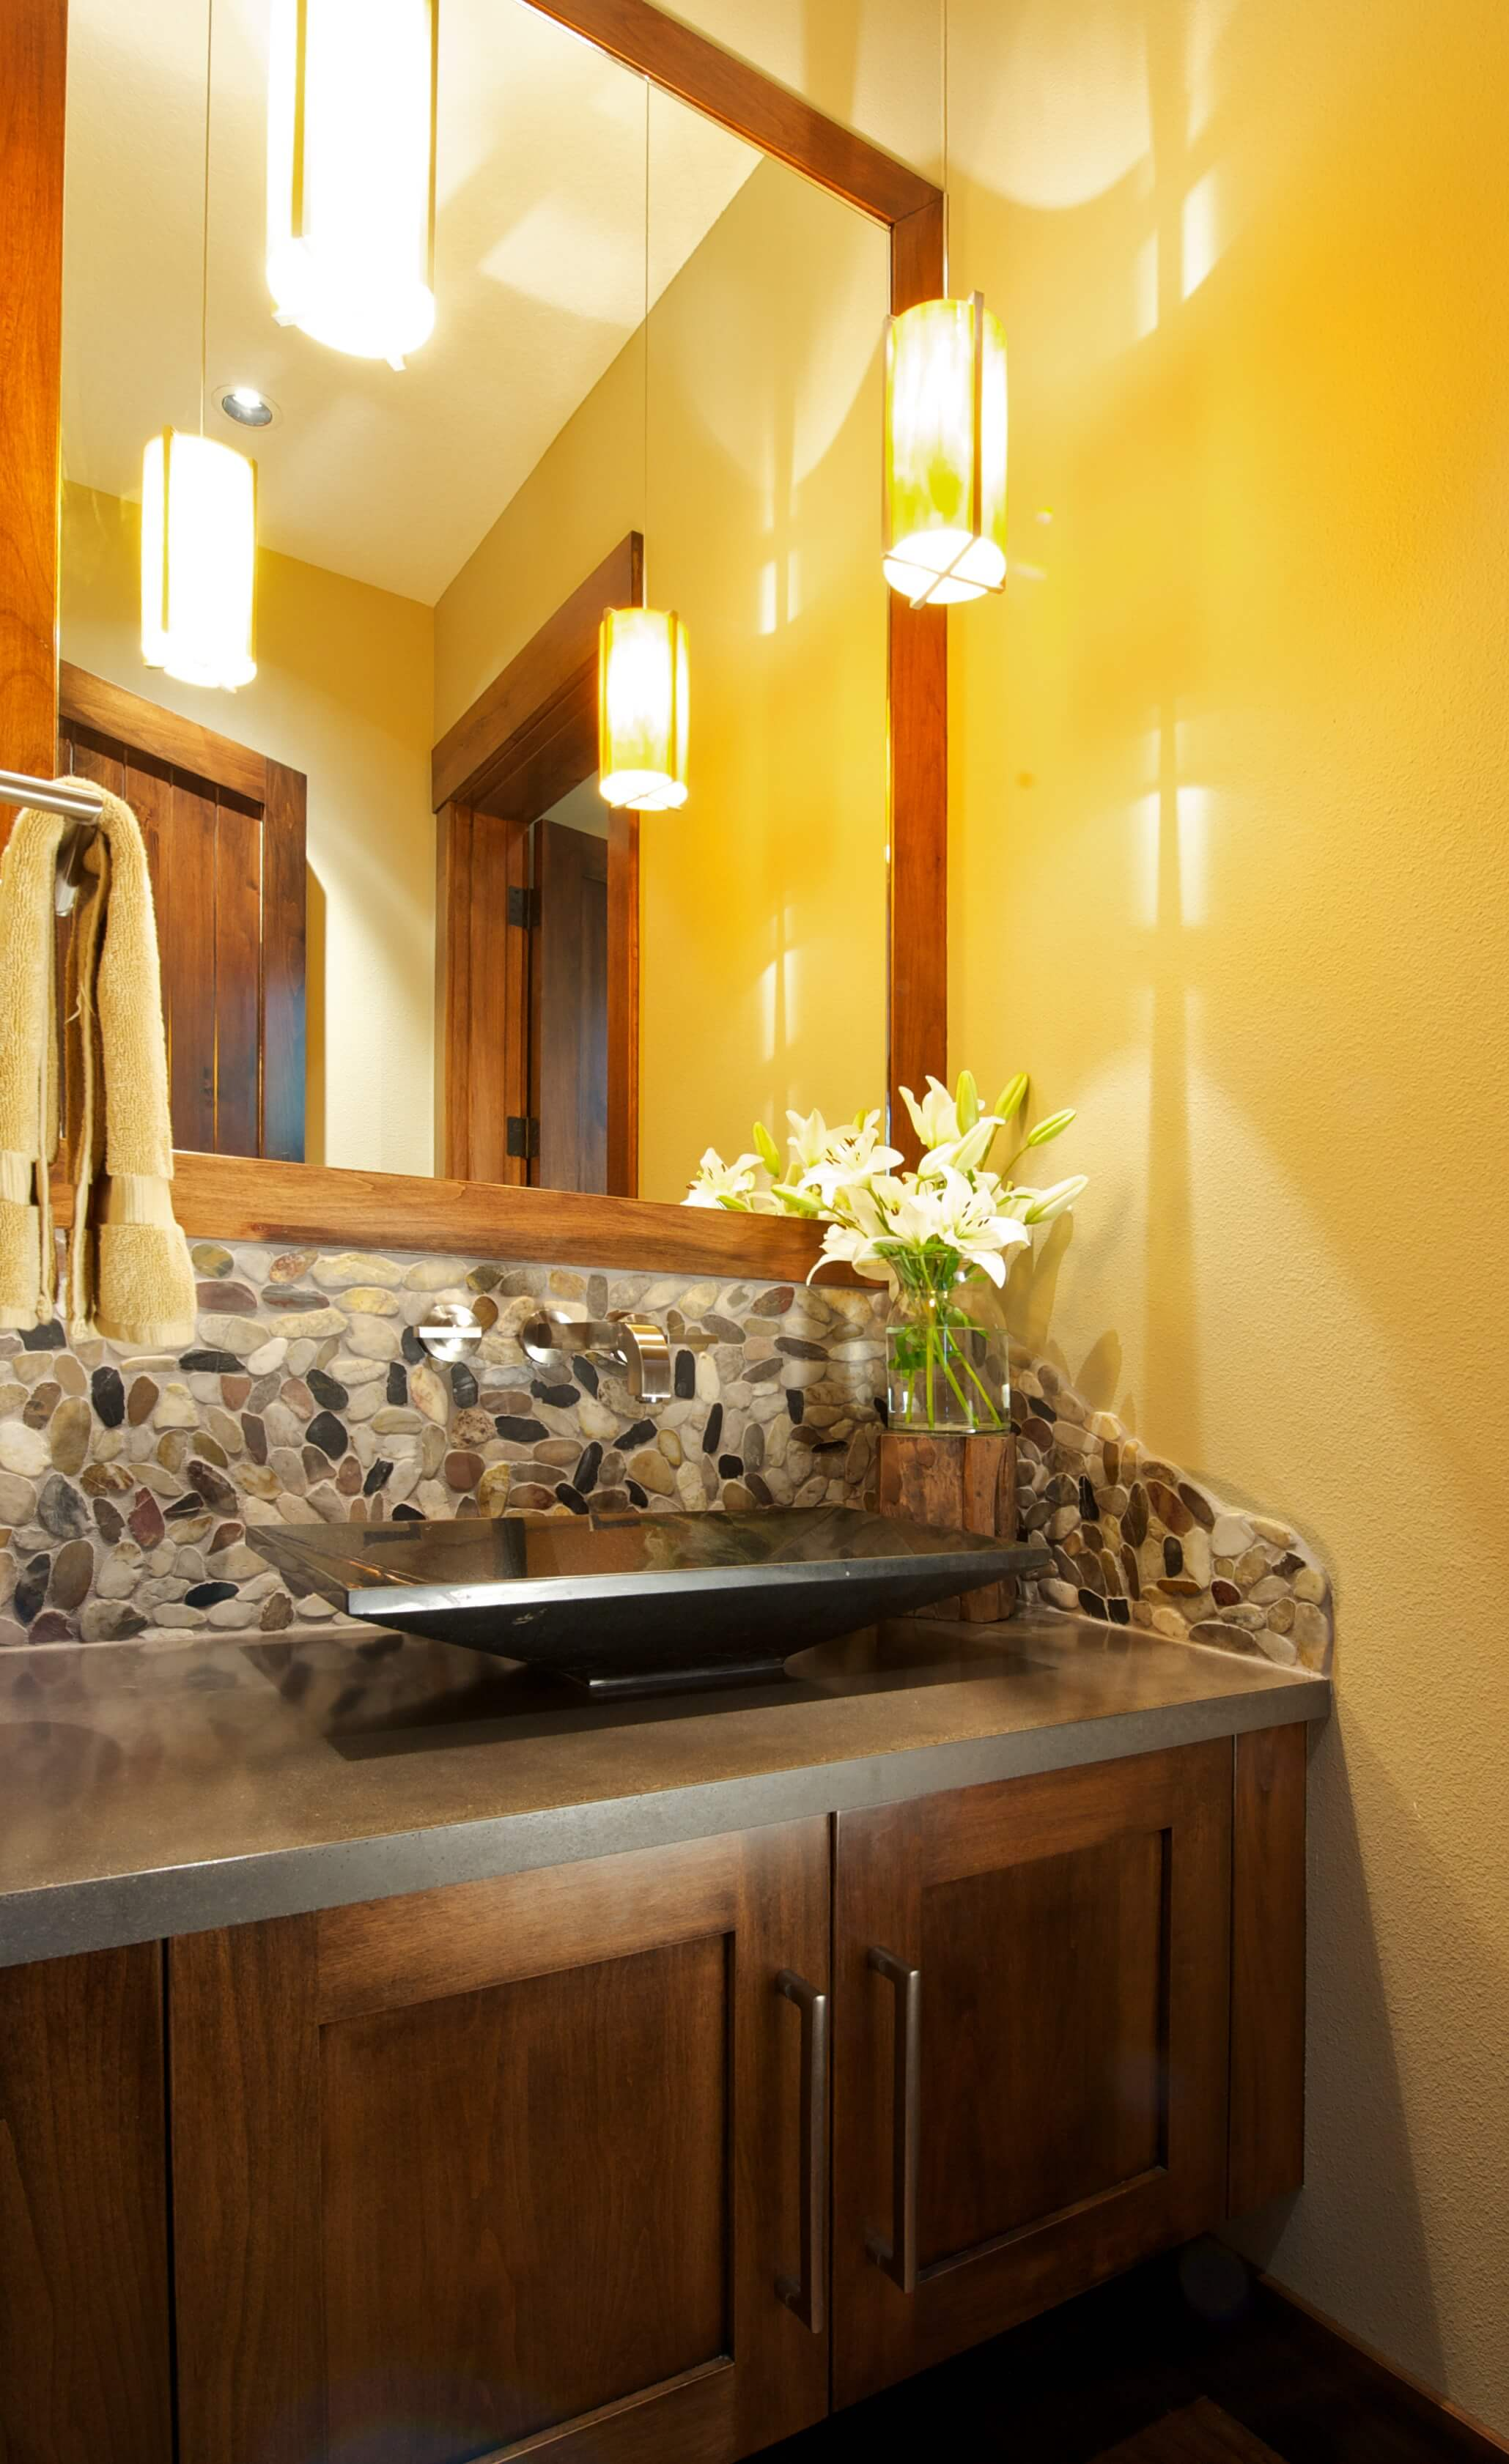 Guest bathroom vessel sink over slate grey countertop with wood cabinetry features stone pattern backsplash beneath mirror.